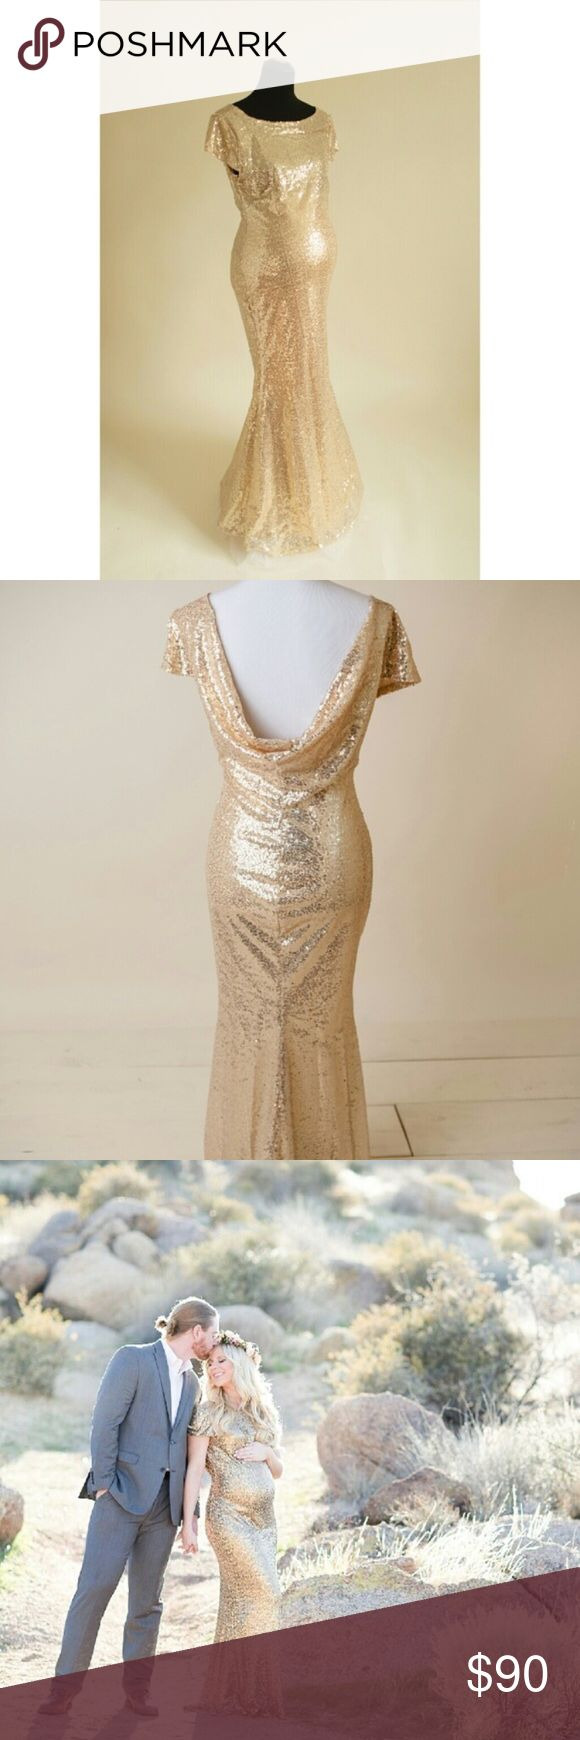 Gold maternity gown Brand new gold sequin maternity gown. Medium size. Dresses Maxi